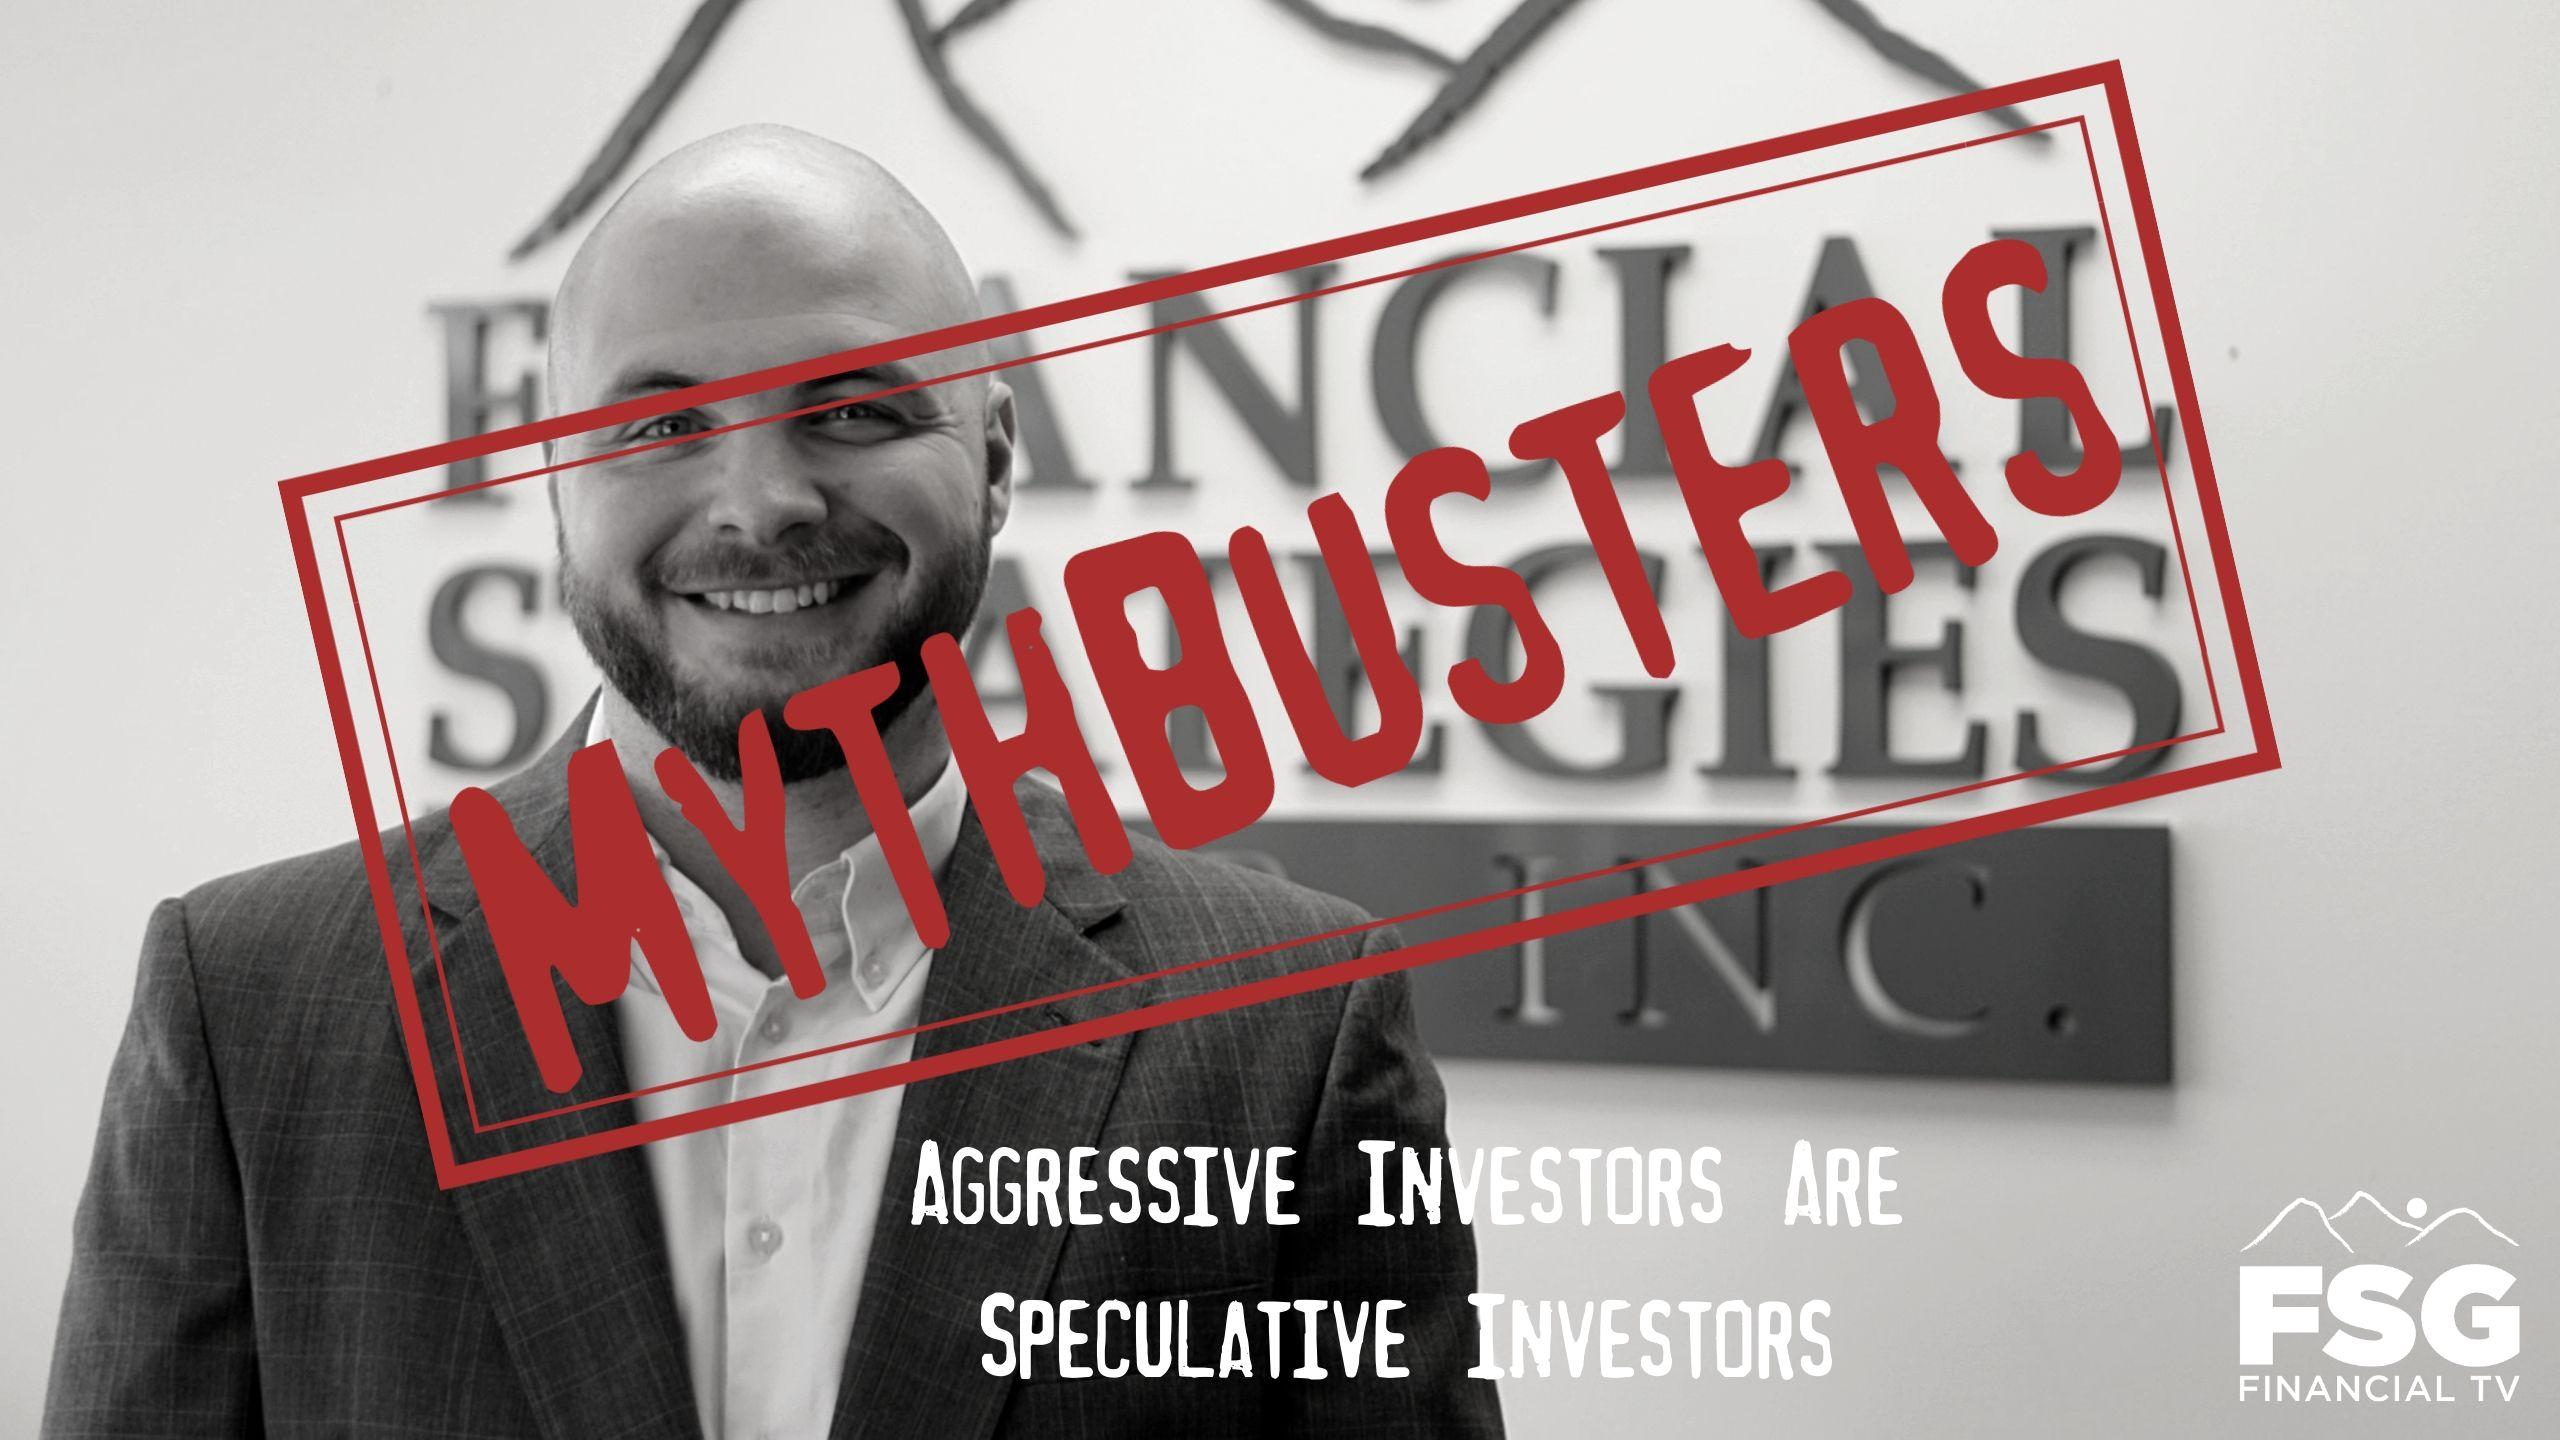 MythBusters: Aggressive Investors Are Speculative Investors Thumbnail